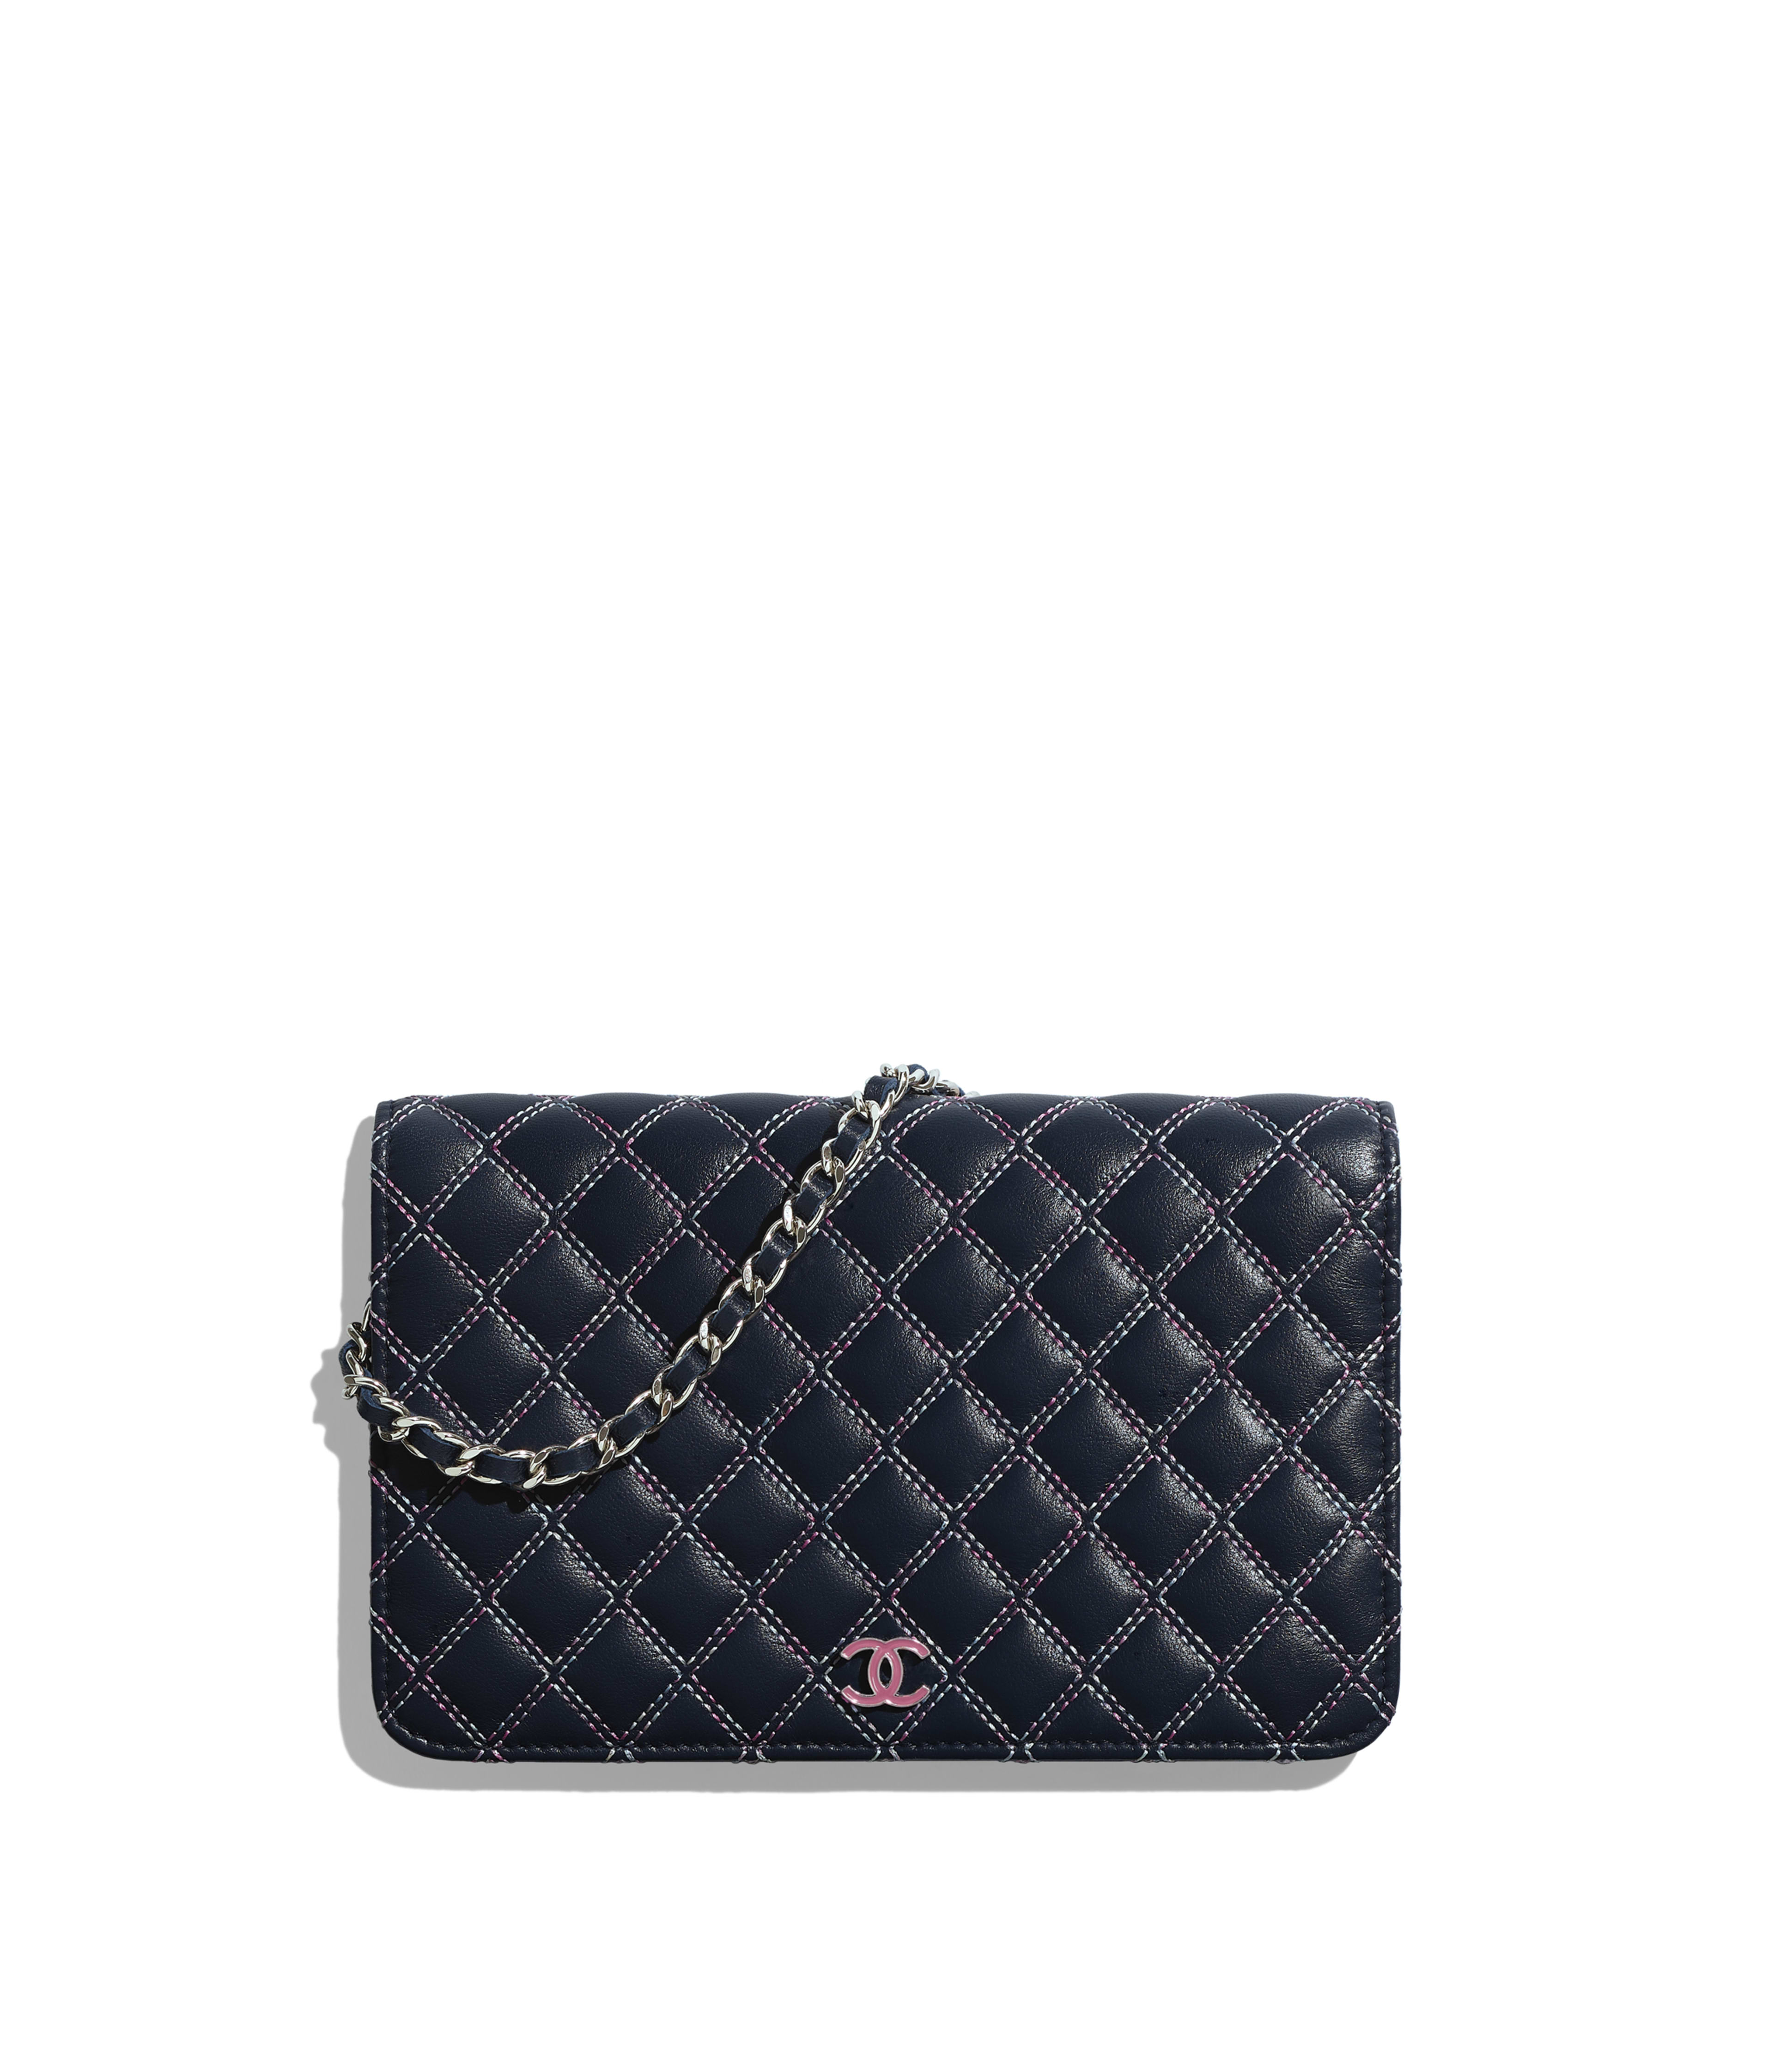 ... wallets on chain small leather goods chanel  nwt chanel 2017 so black  crystal camellia ... 010aeb4371